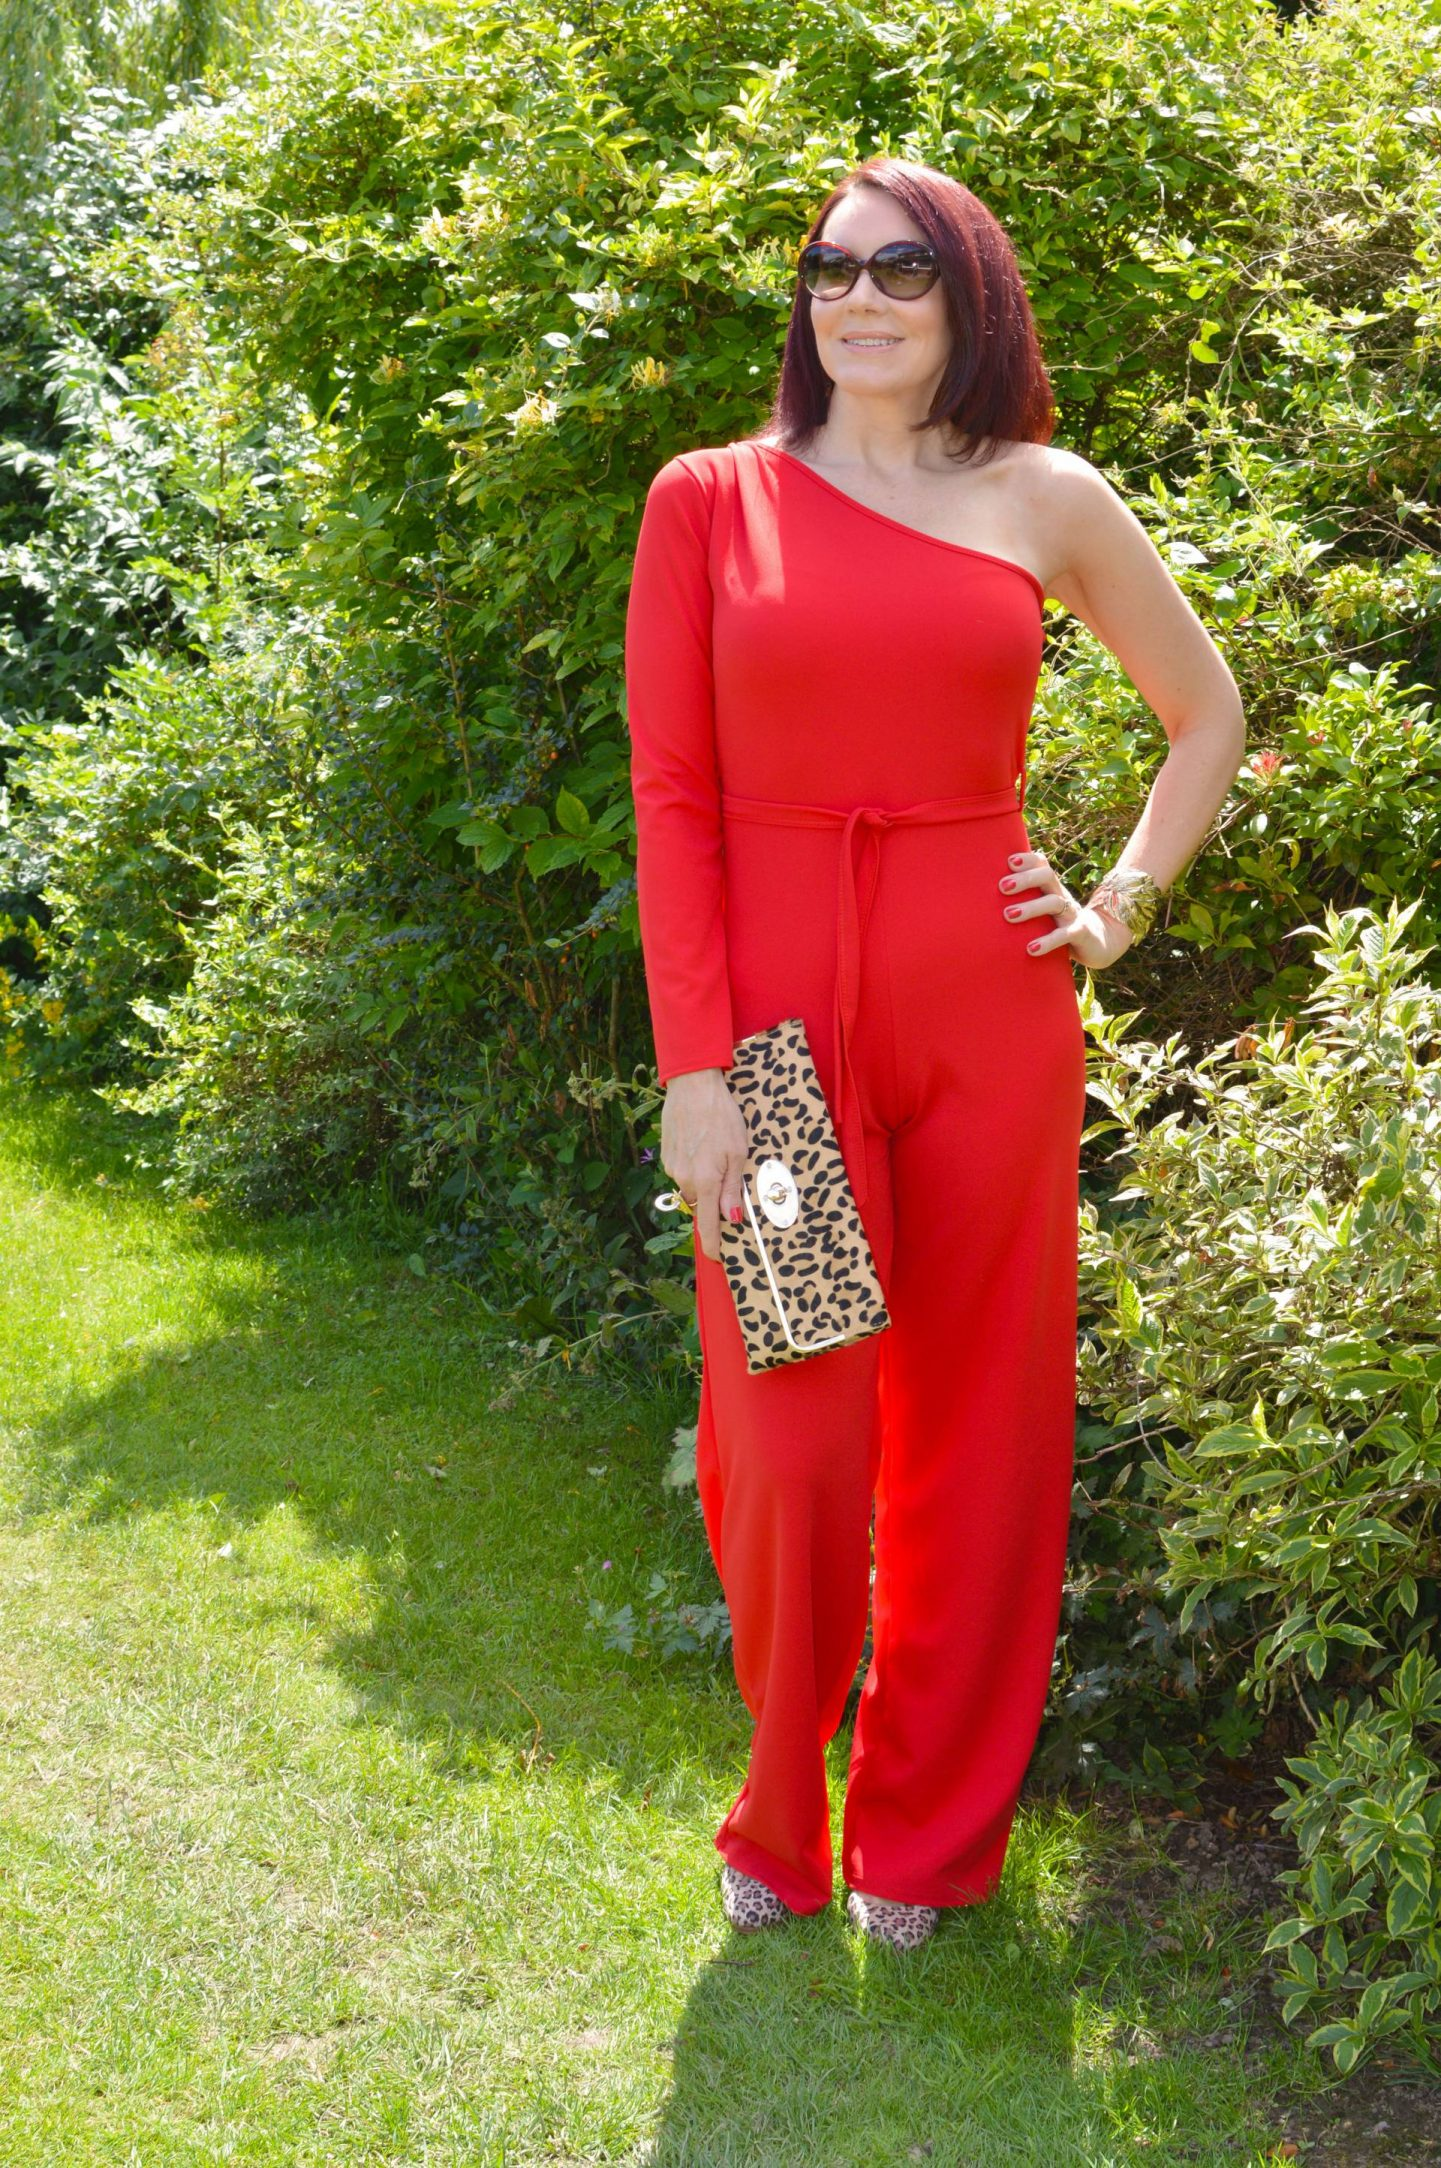 Femme Luxe Red One Shoulder Jumpsuit With Leopard Print Accessories